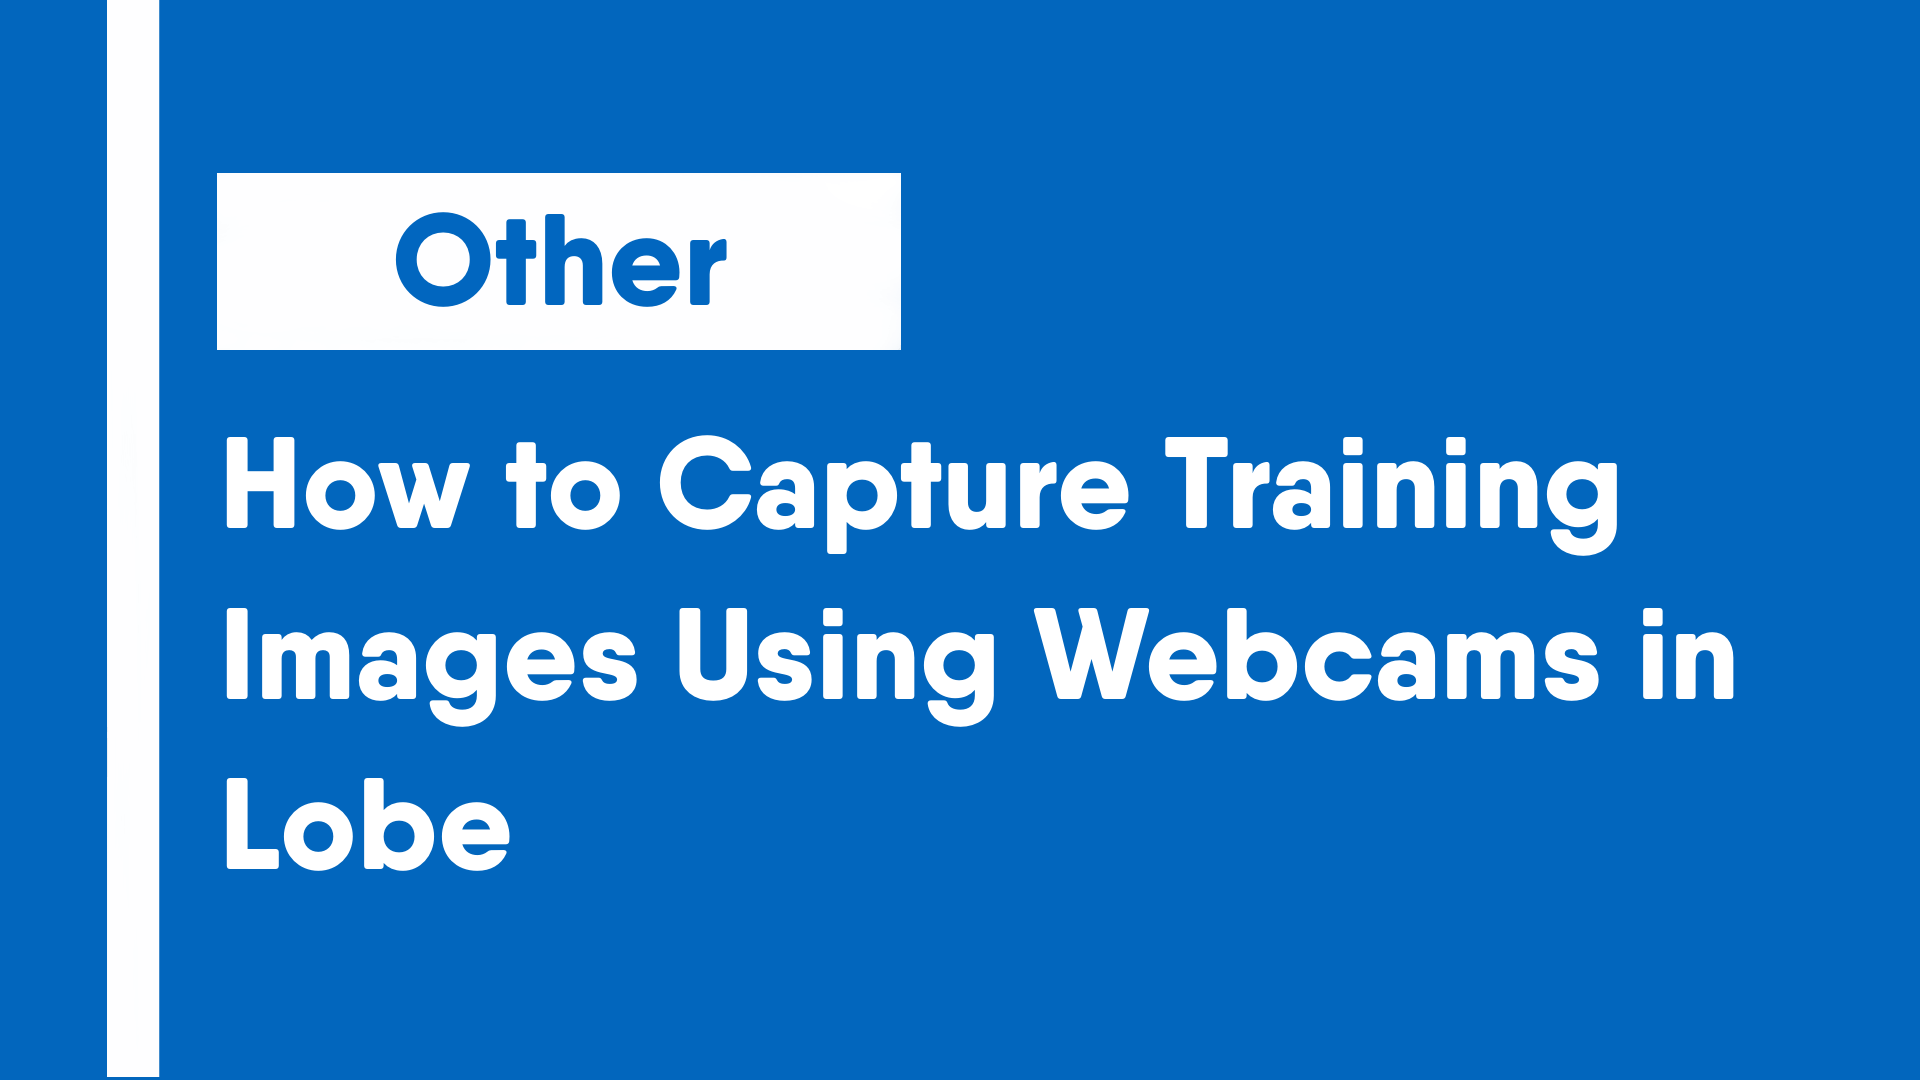 How to Capture Training Images Using Webcams in Lobe